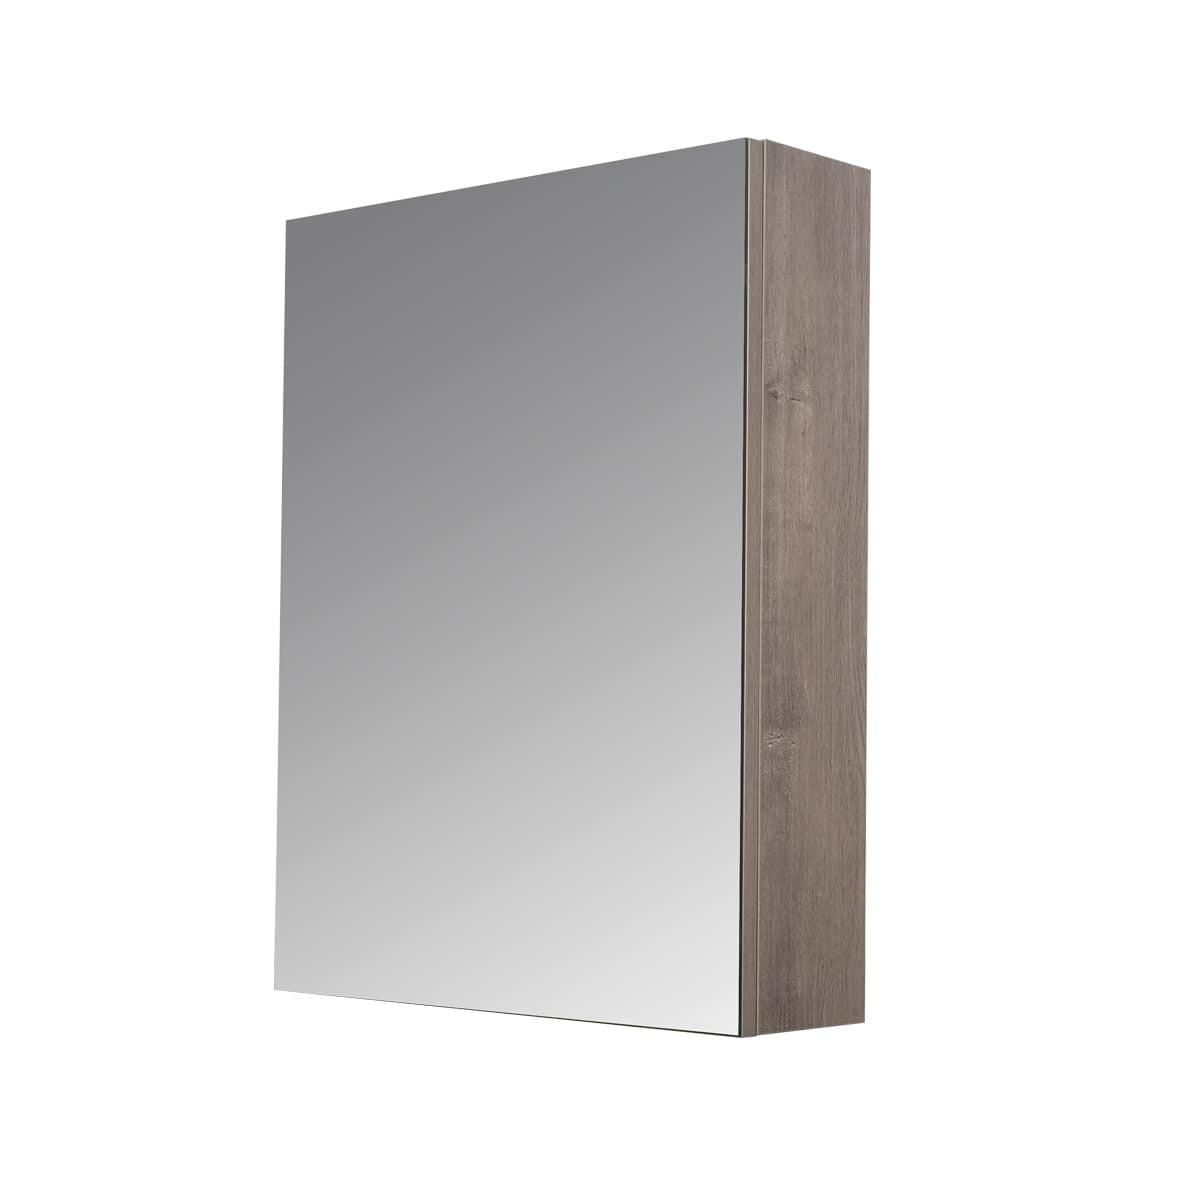 Better Homes & Gardens Rustic Grey Wood Wall Mounted Mirror/ Medicine Cabinet $37.70 + Free Shipping